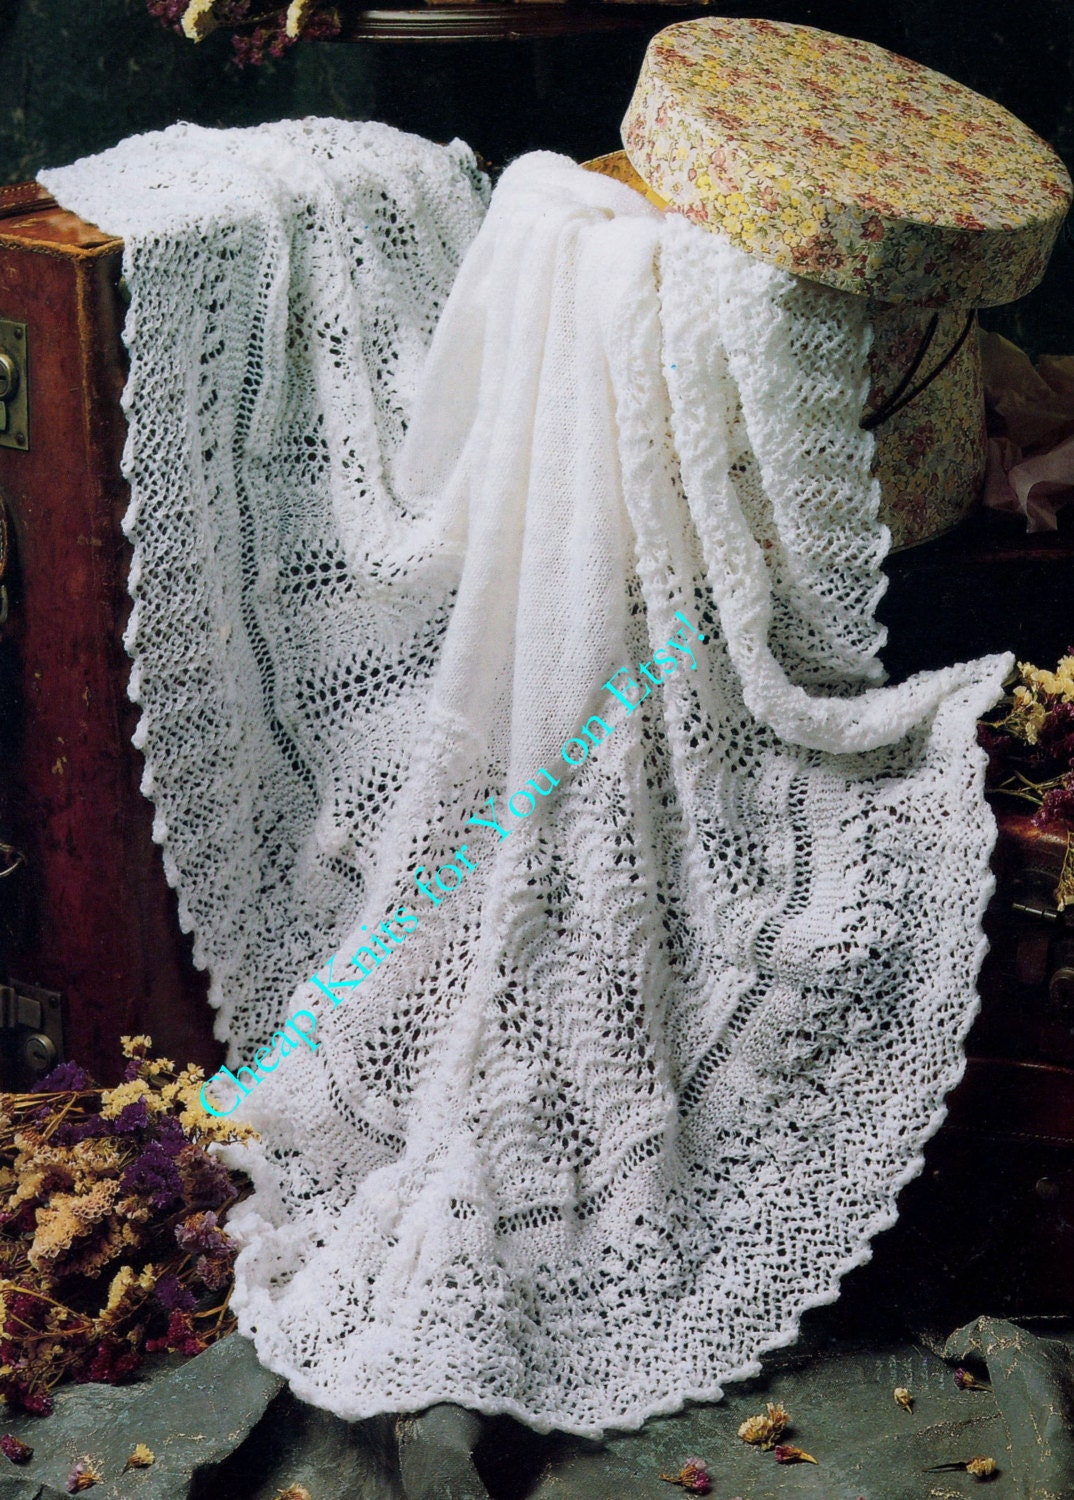 Knitting Patterns For Christening Shawls : Baby Christening Shawl Shawl Blanket 48x48 inches in